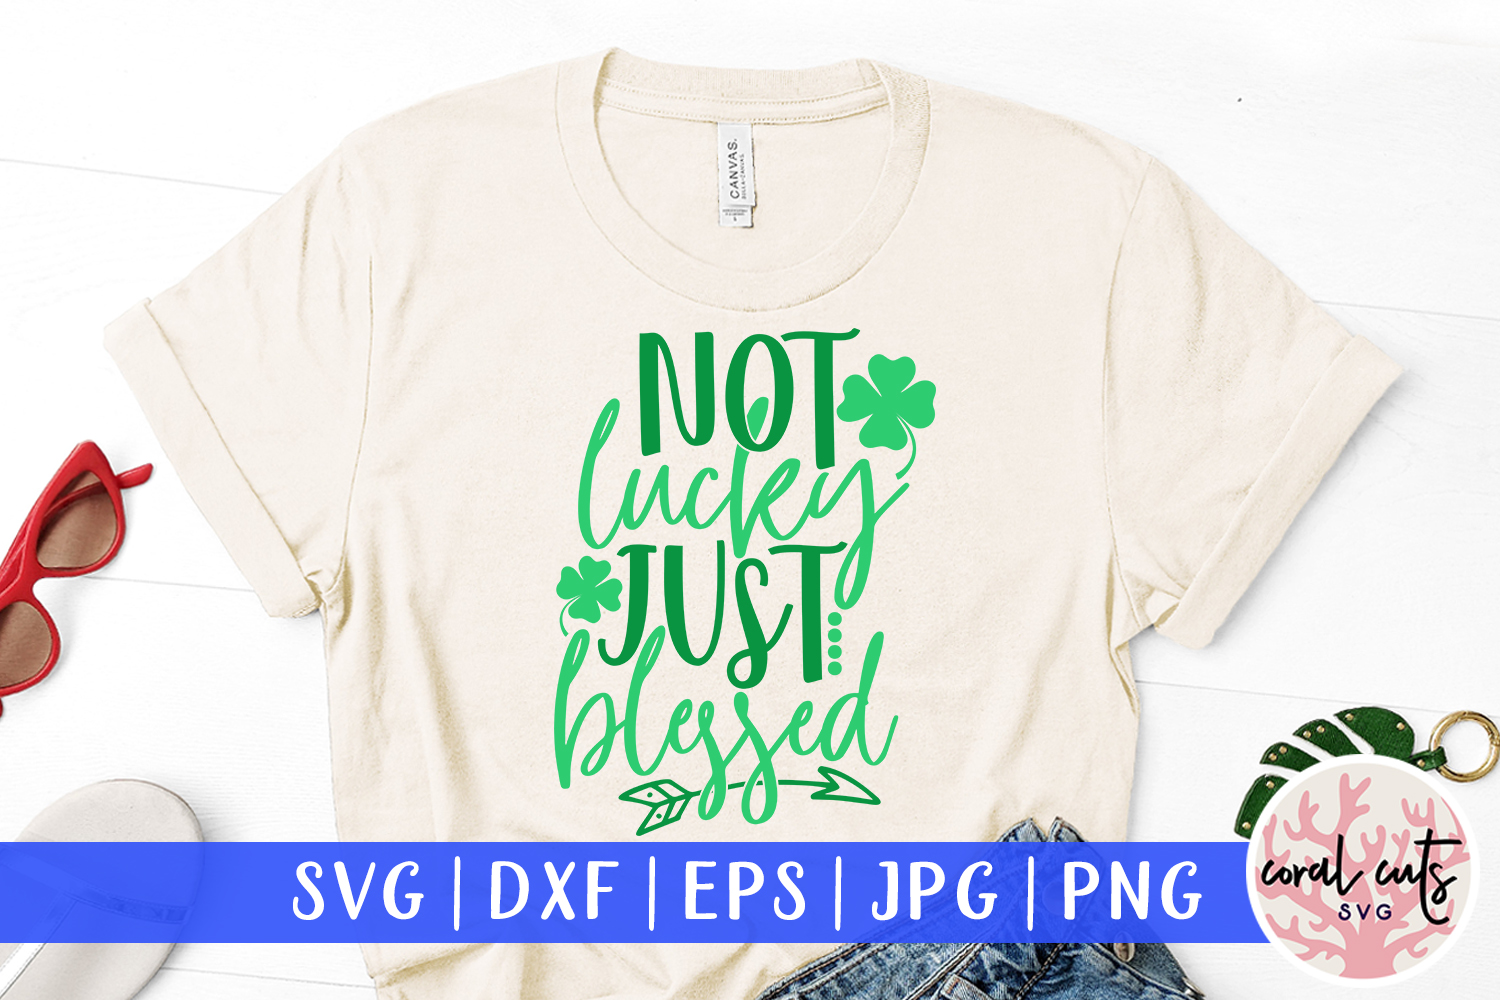 Not lucky just blessed - St. Patrick's Day SVG EPS DXF PNG example image 1